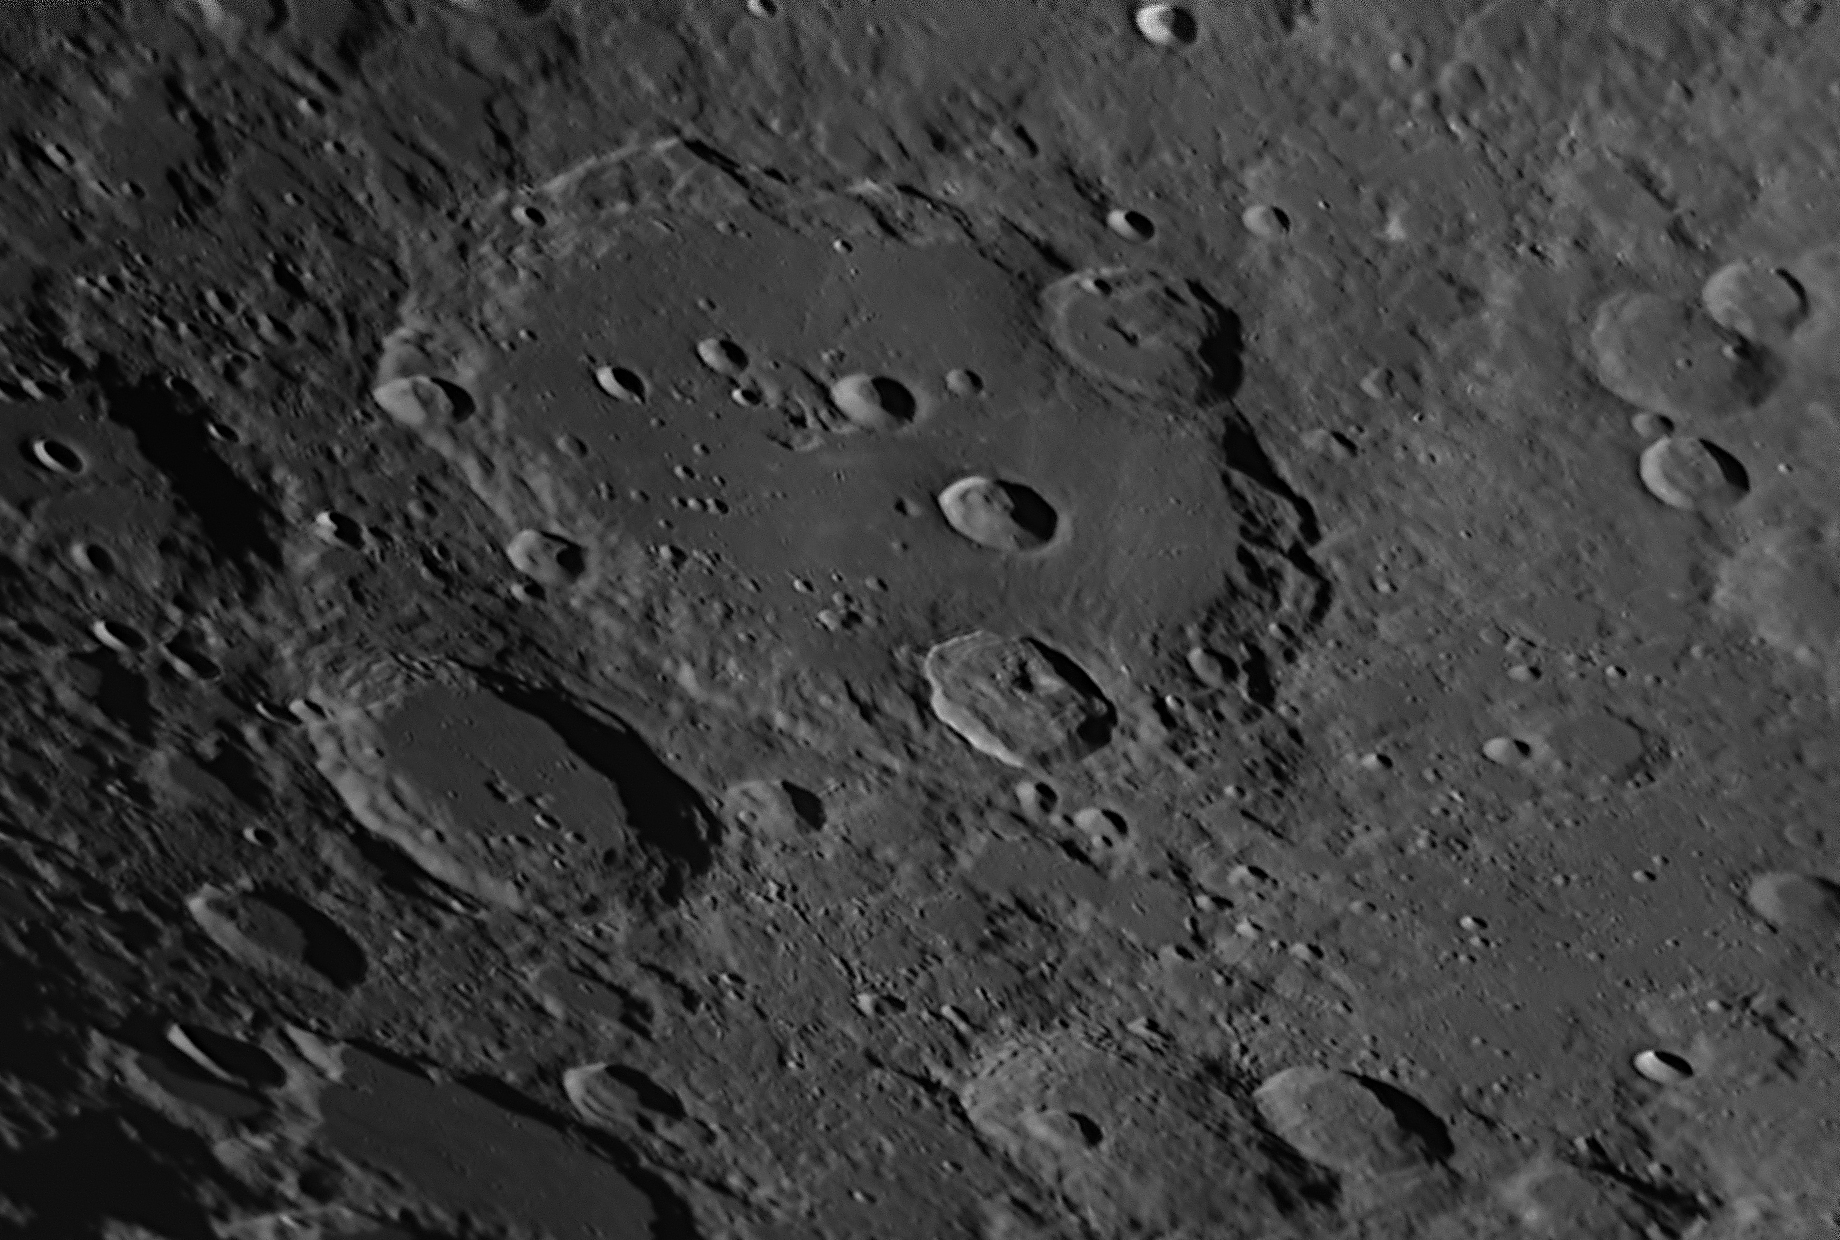 Clavius with the Basler 1920-155um